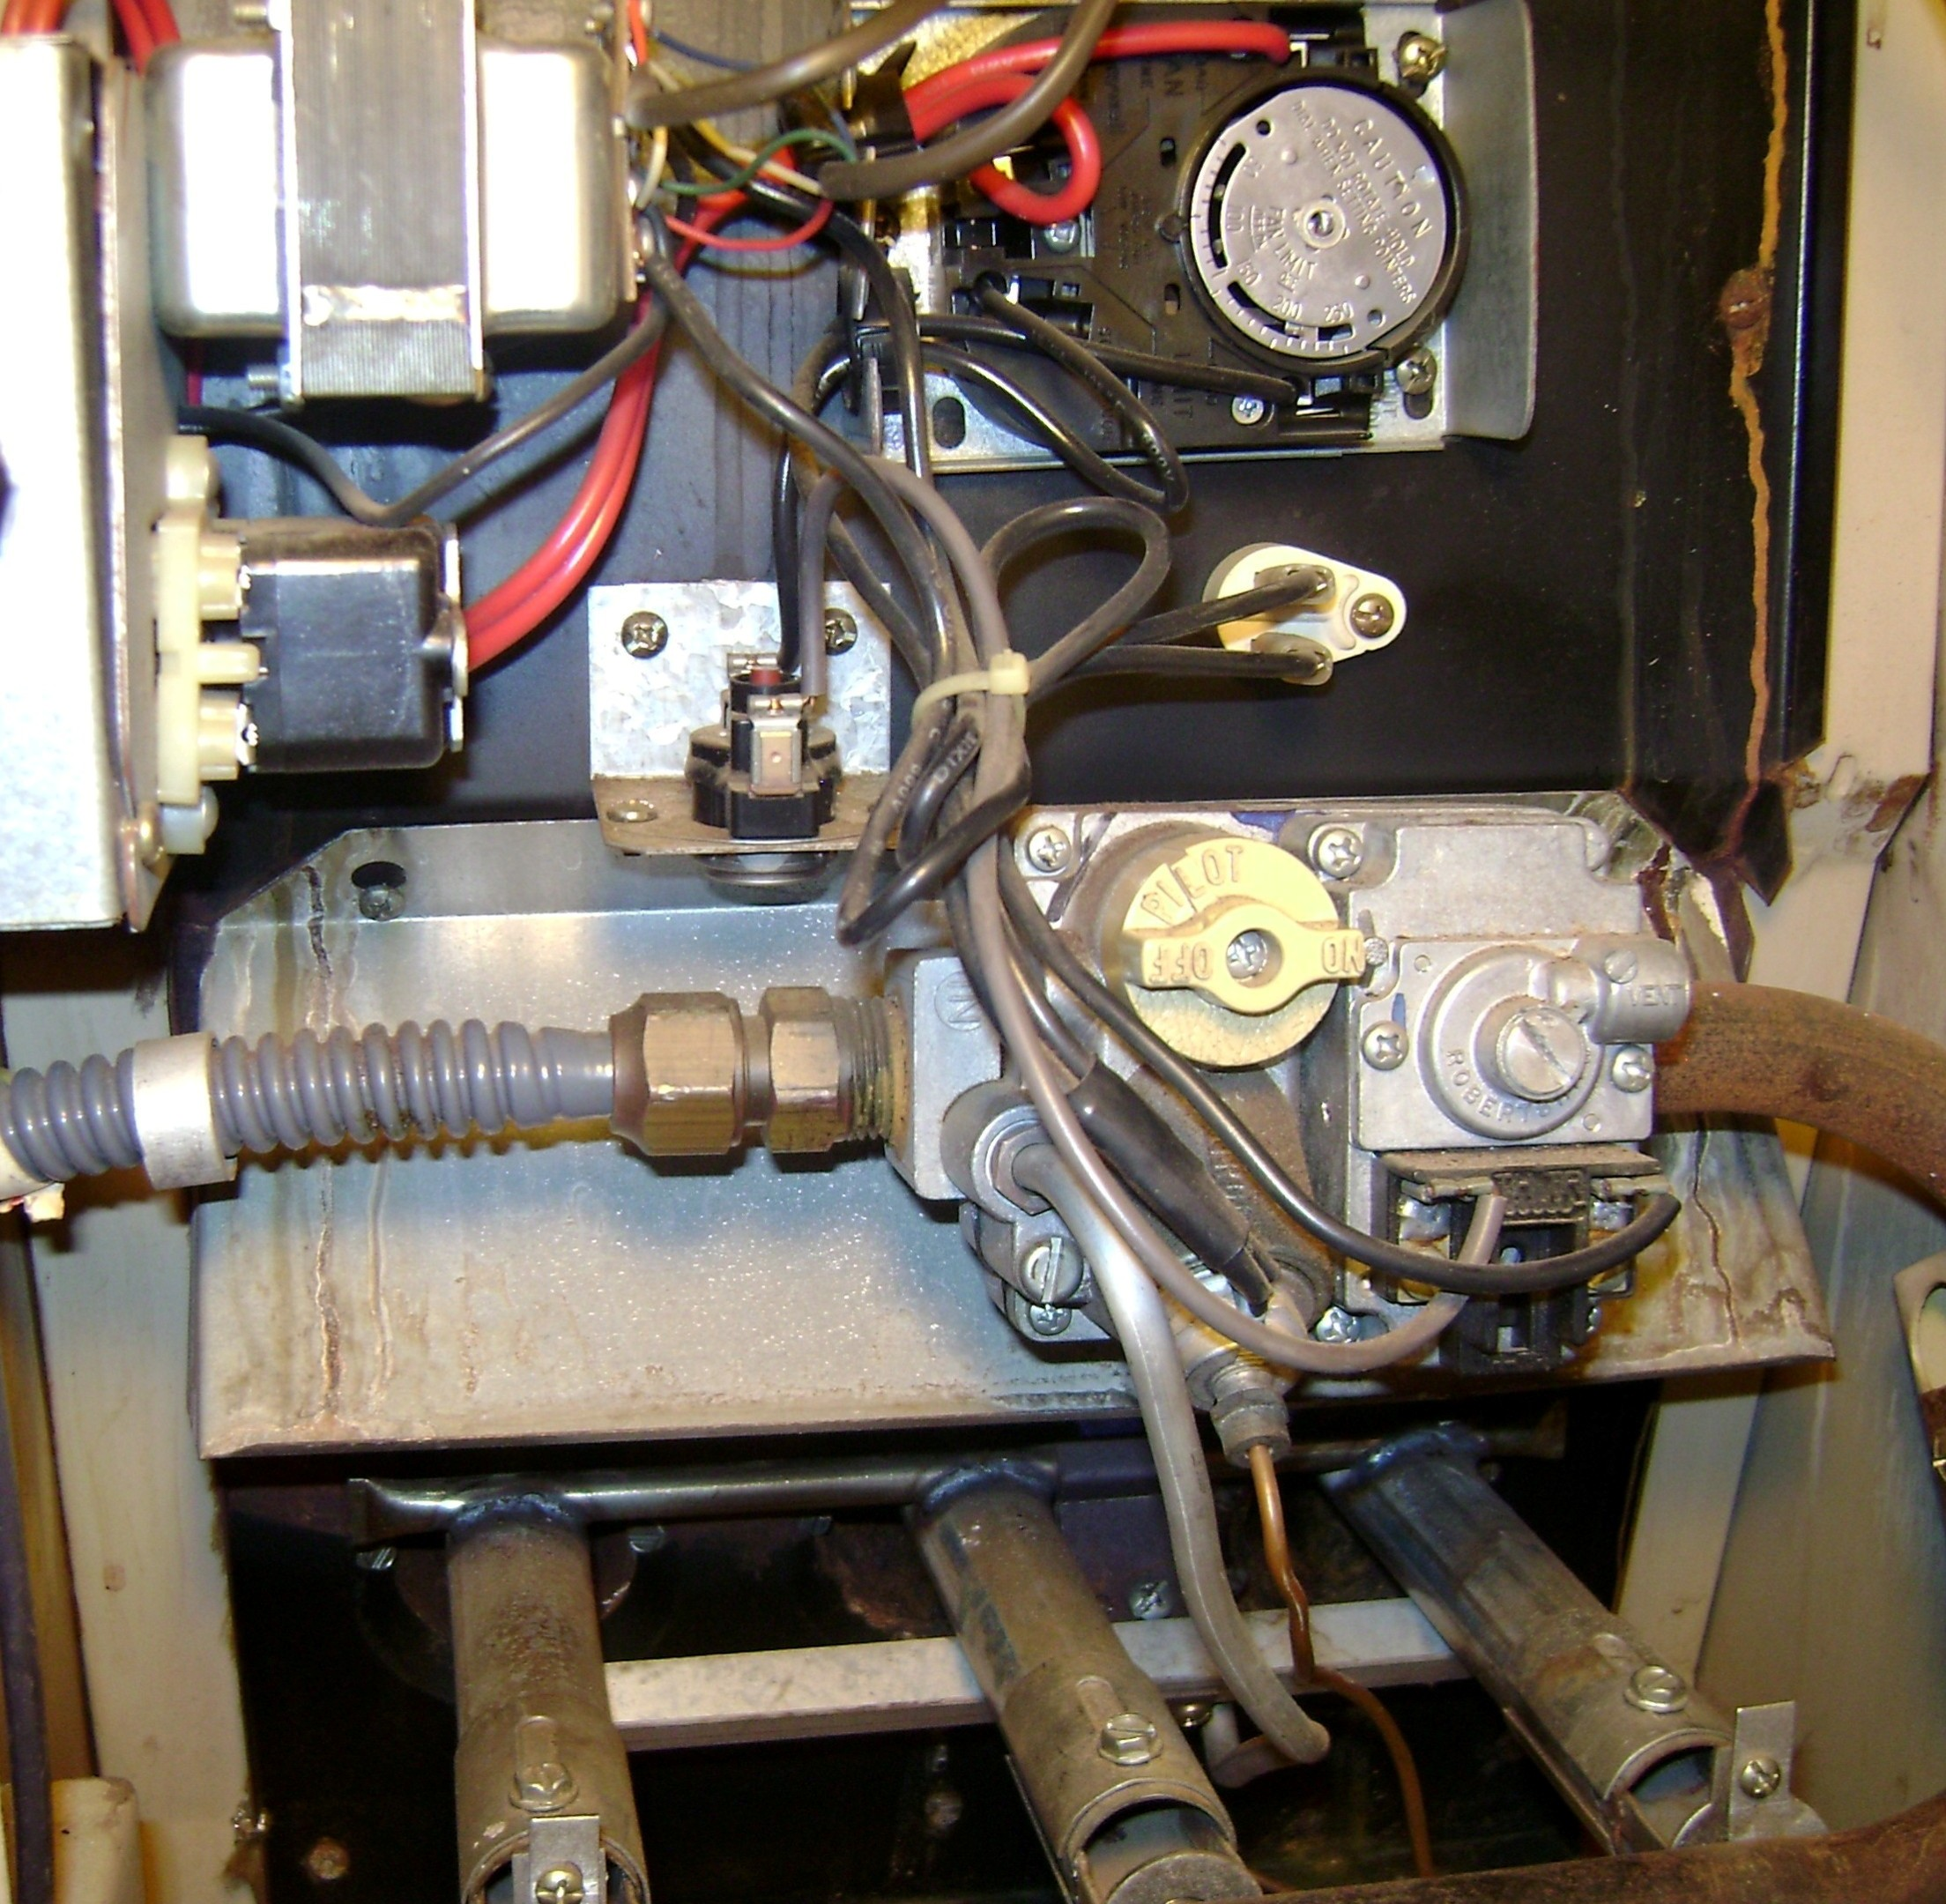 I Have An Older Ruud Gas Furnace Pilot Light Type Is Thermostat Are Connected To At The Furnacehere A Typical Wiring Graphic